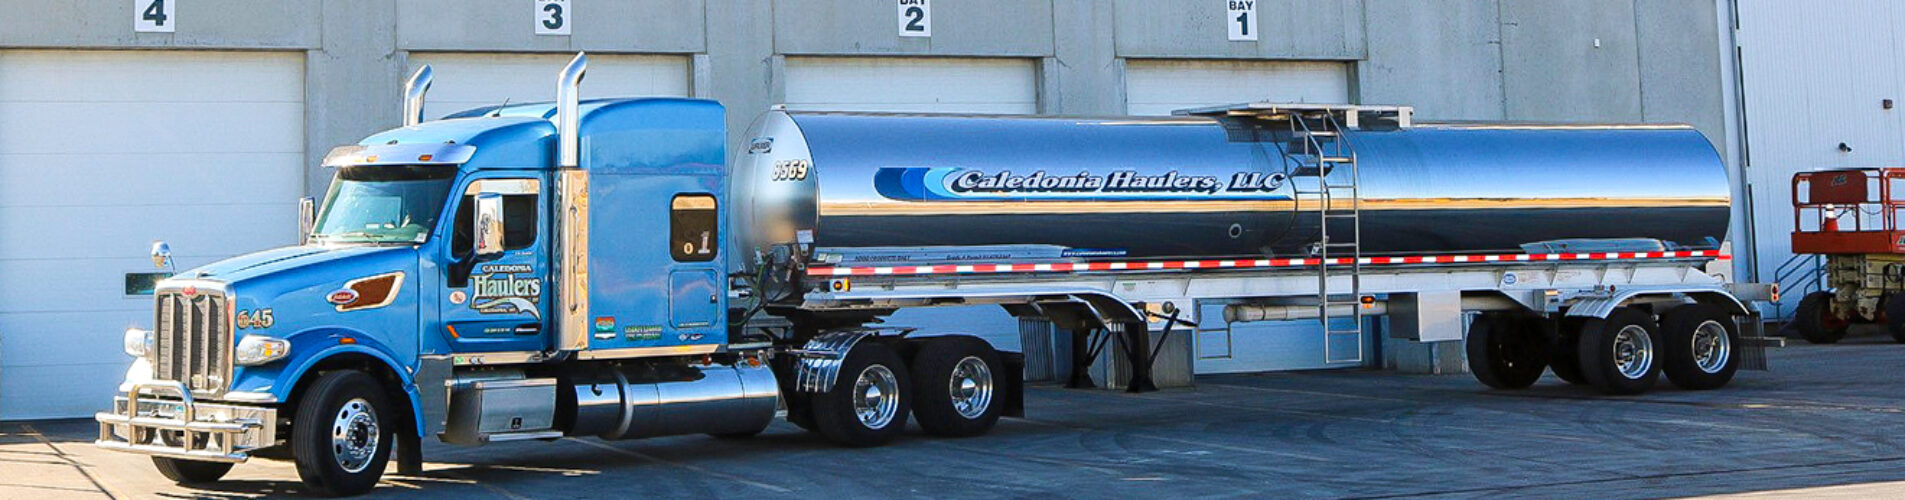 Caledonia Haulers Truck Driving Through the Mountains